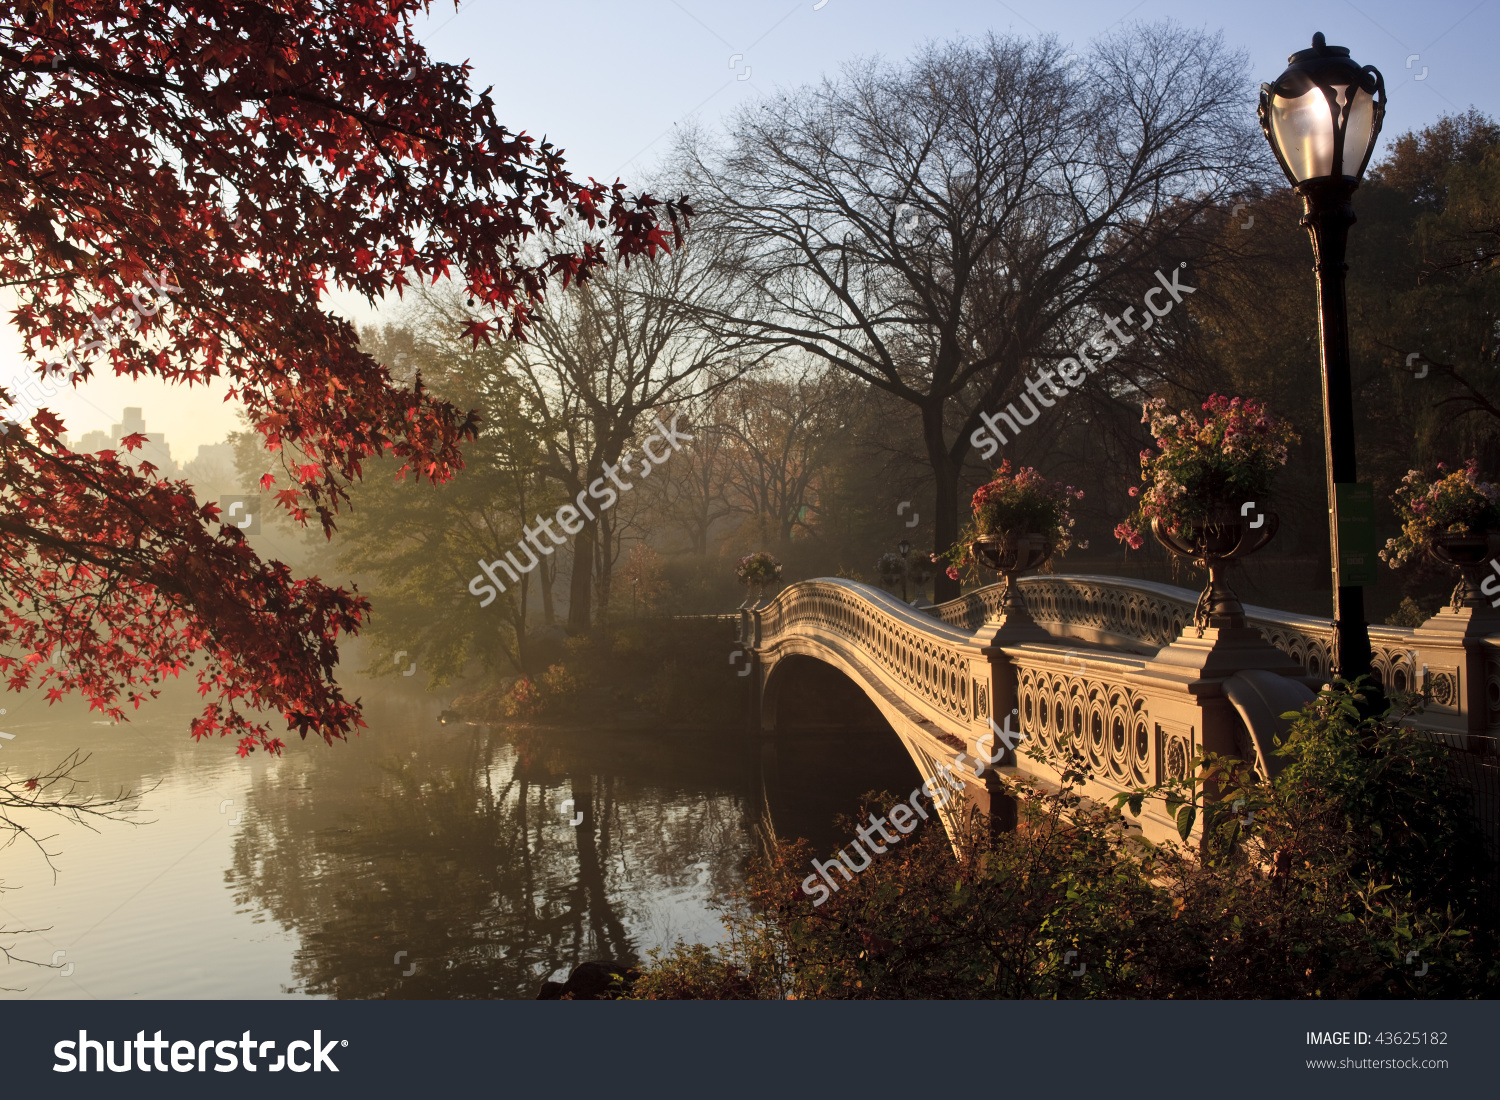 Early Morning In The Fog In Central Park New York City By The Bow.